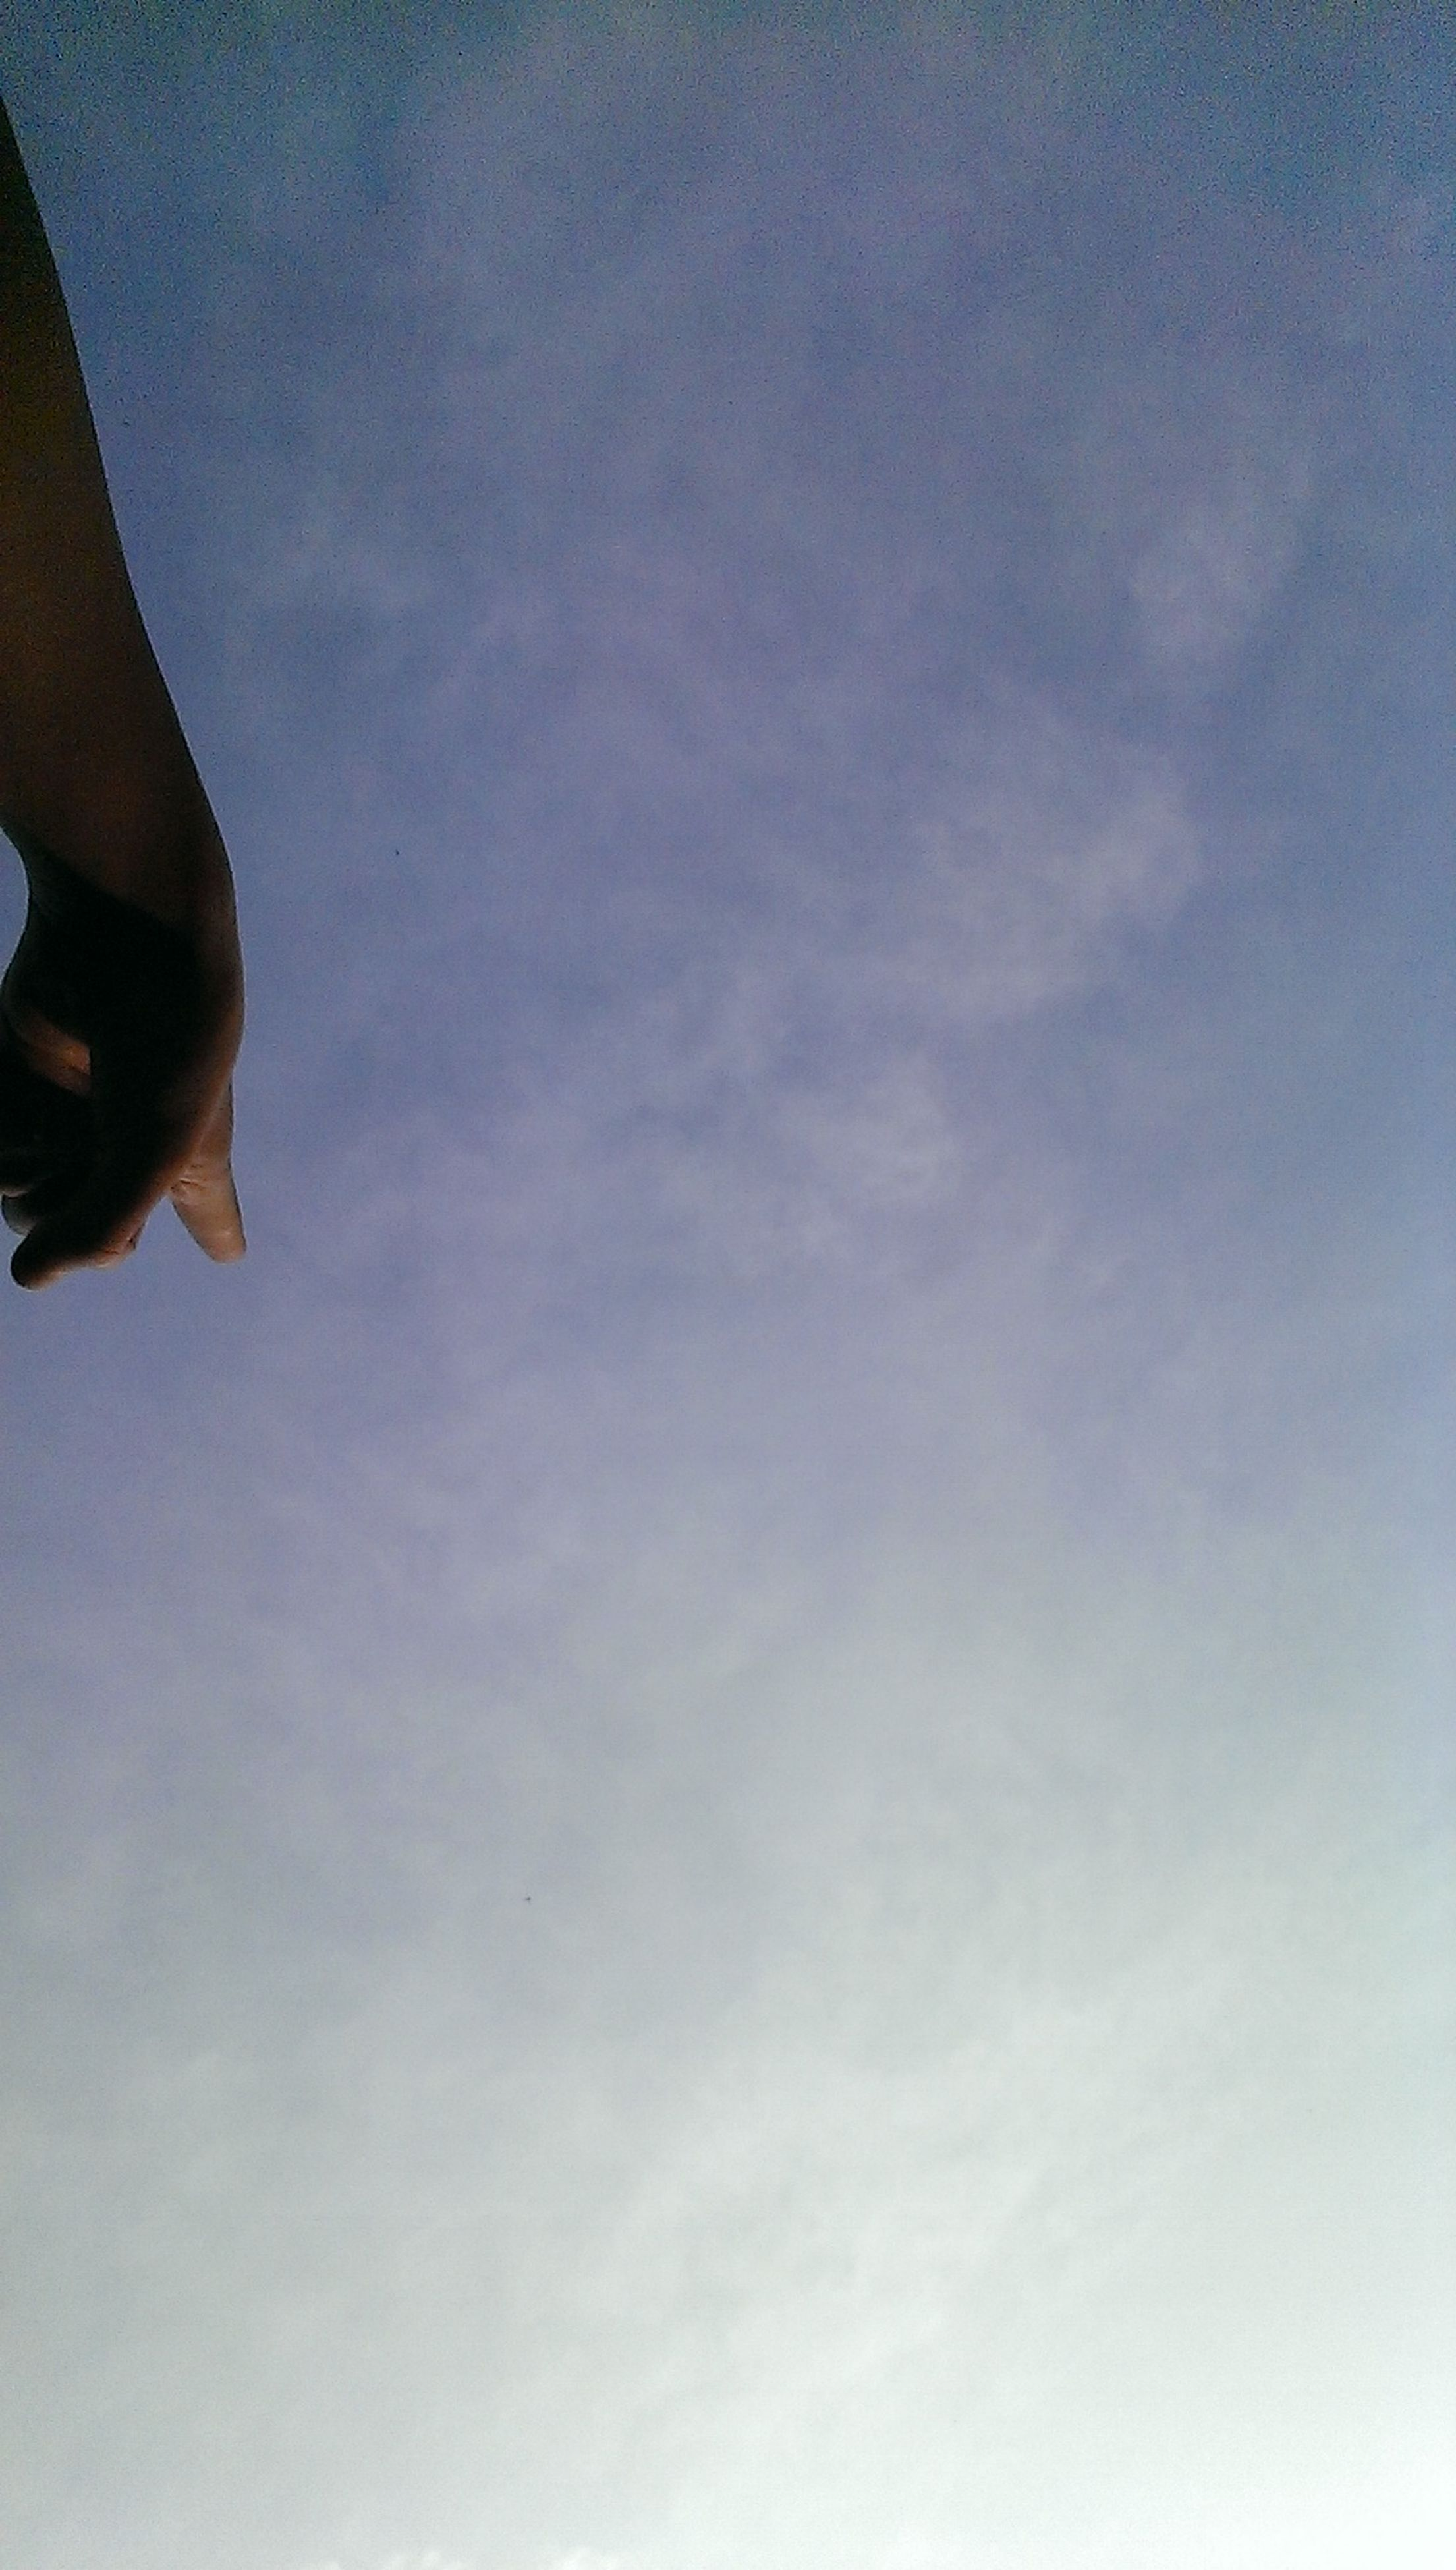 low angle view, sky, cloud - sky, lifestyles, flying, cloud, leisure activity, blue, part of, mid-air, outdoors, cloudy, unrecognizable person, day, nature, men, copy space